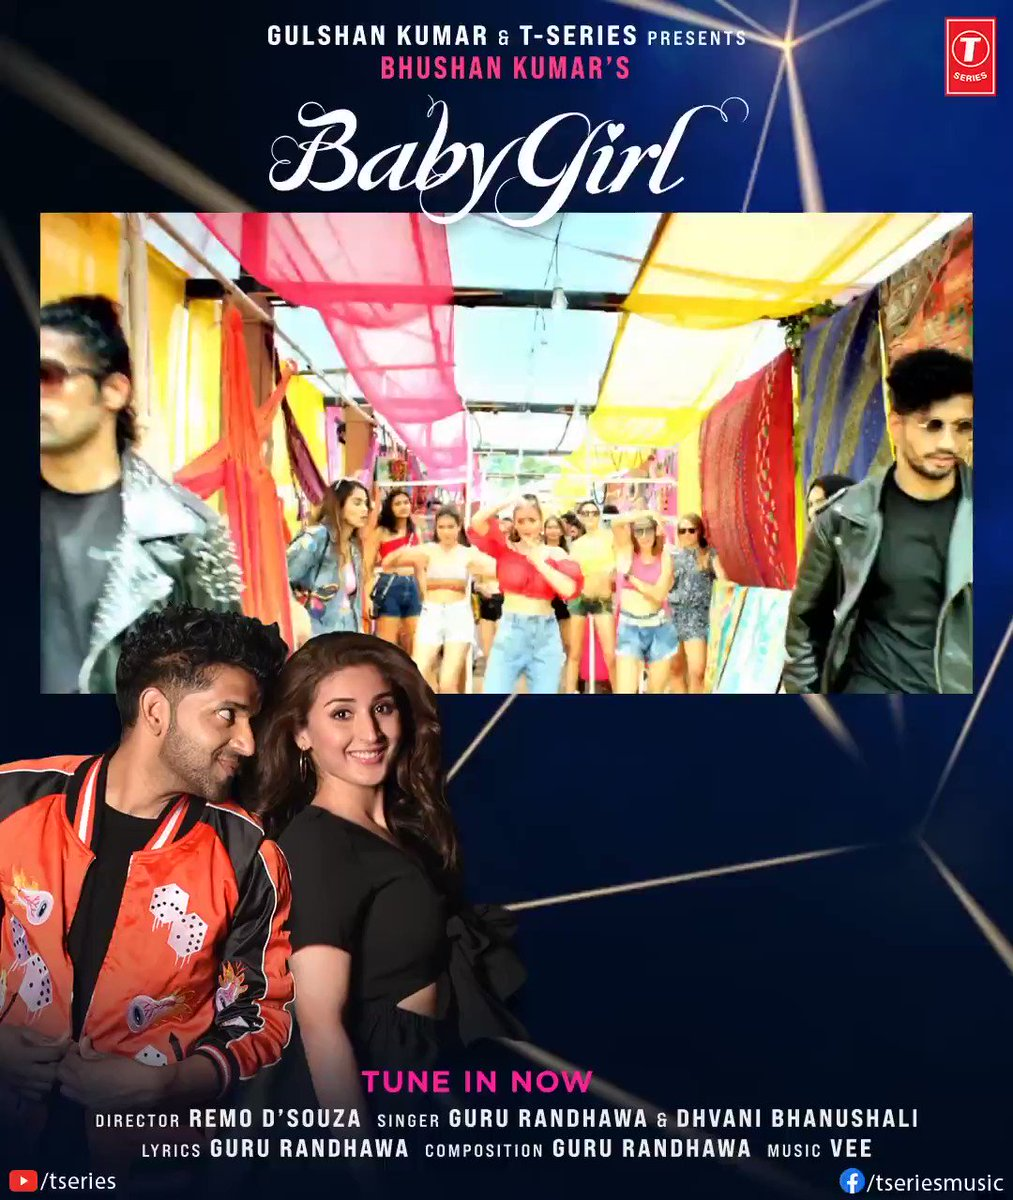 #BabyGirl continues to paint the town all pink! Keep grooving non- stop as its 250M views and counting on YouTube for our favourite dance party number. Tune in now:    #tseries #BhushanKumar @GuruOfficial @dhvanivinod @officialvee @remodsouza